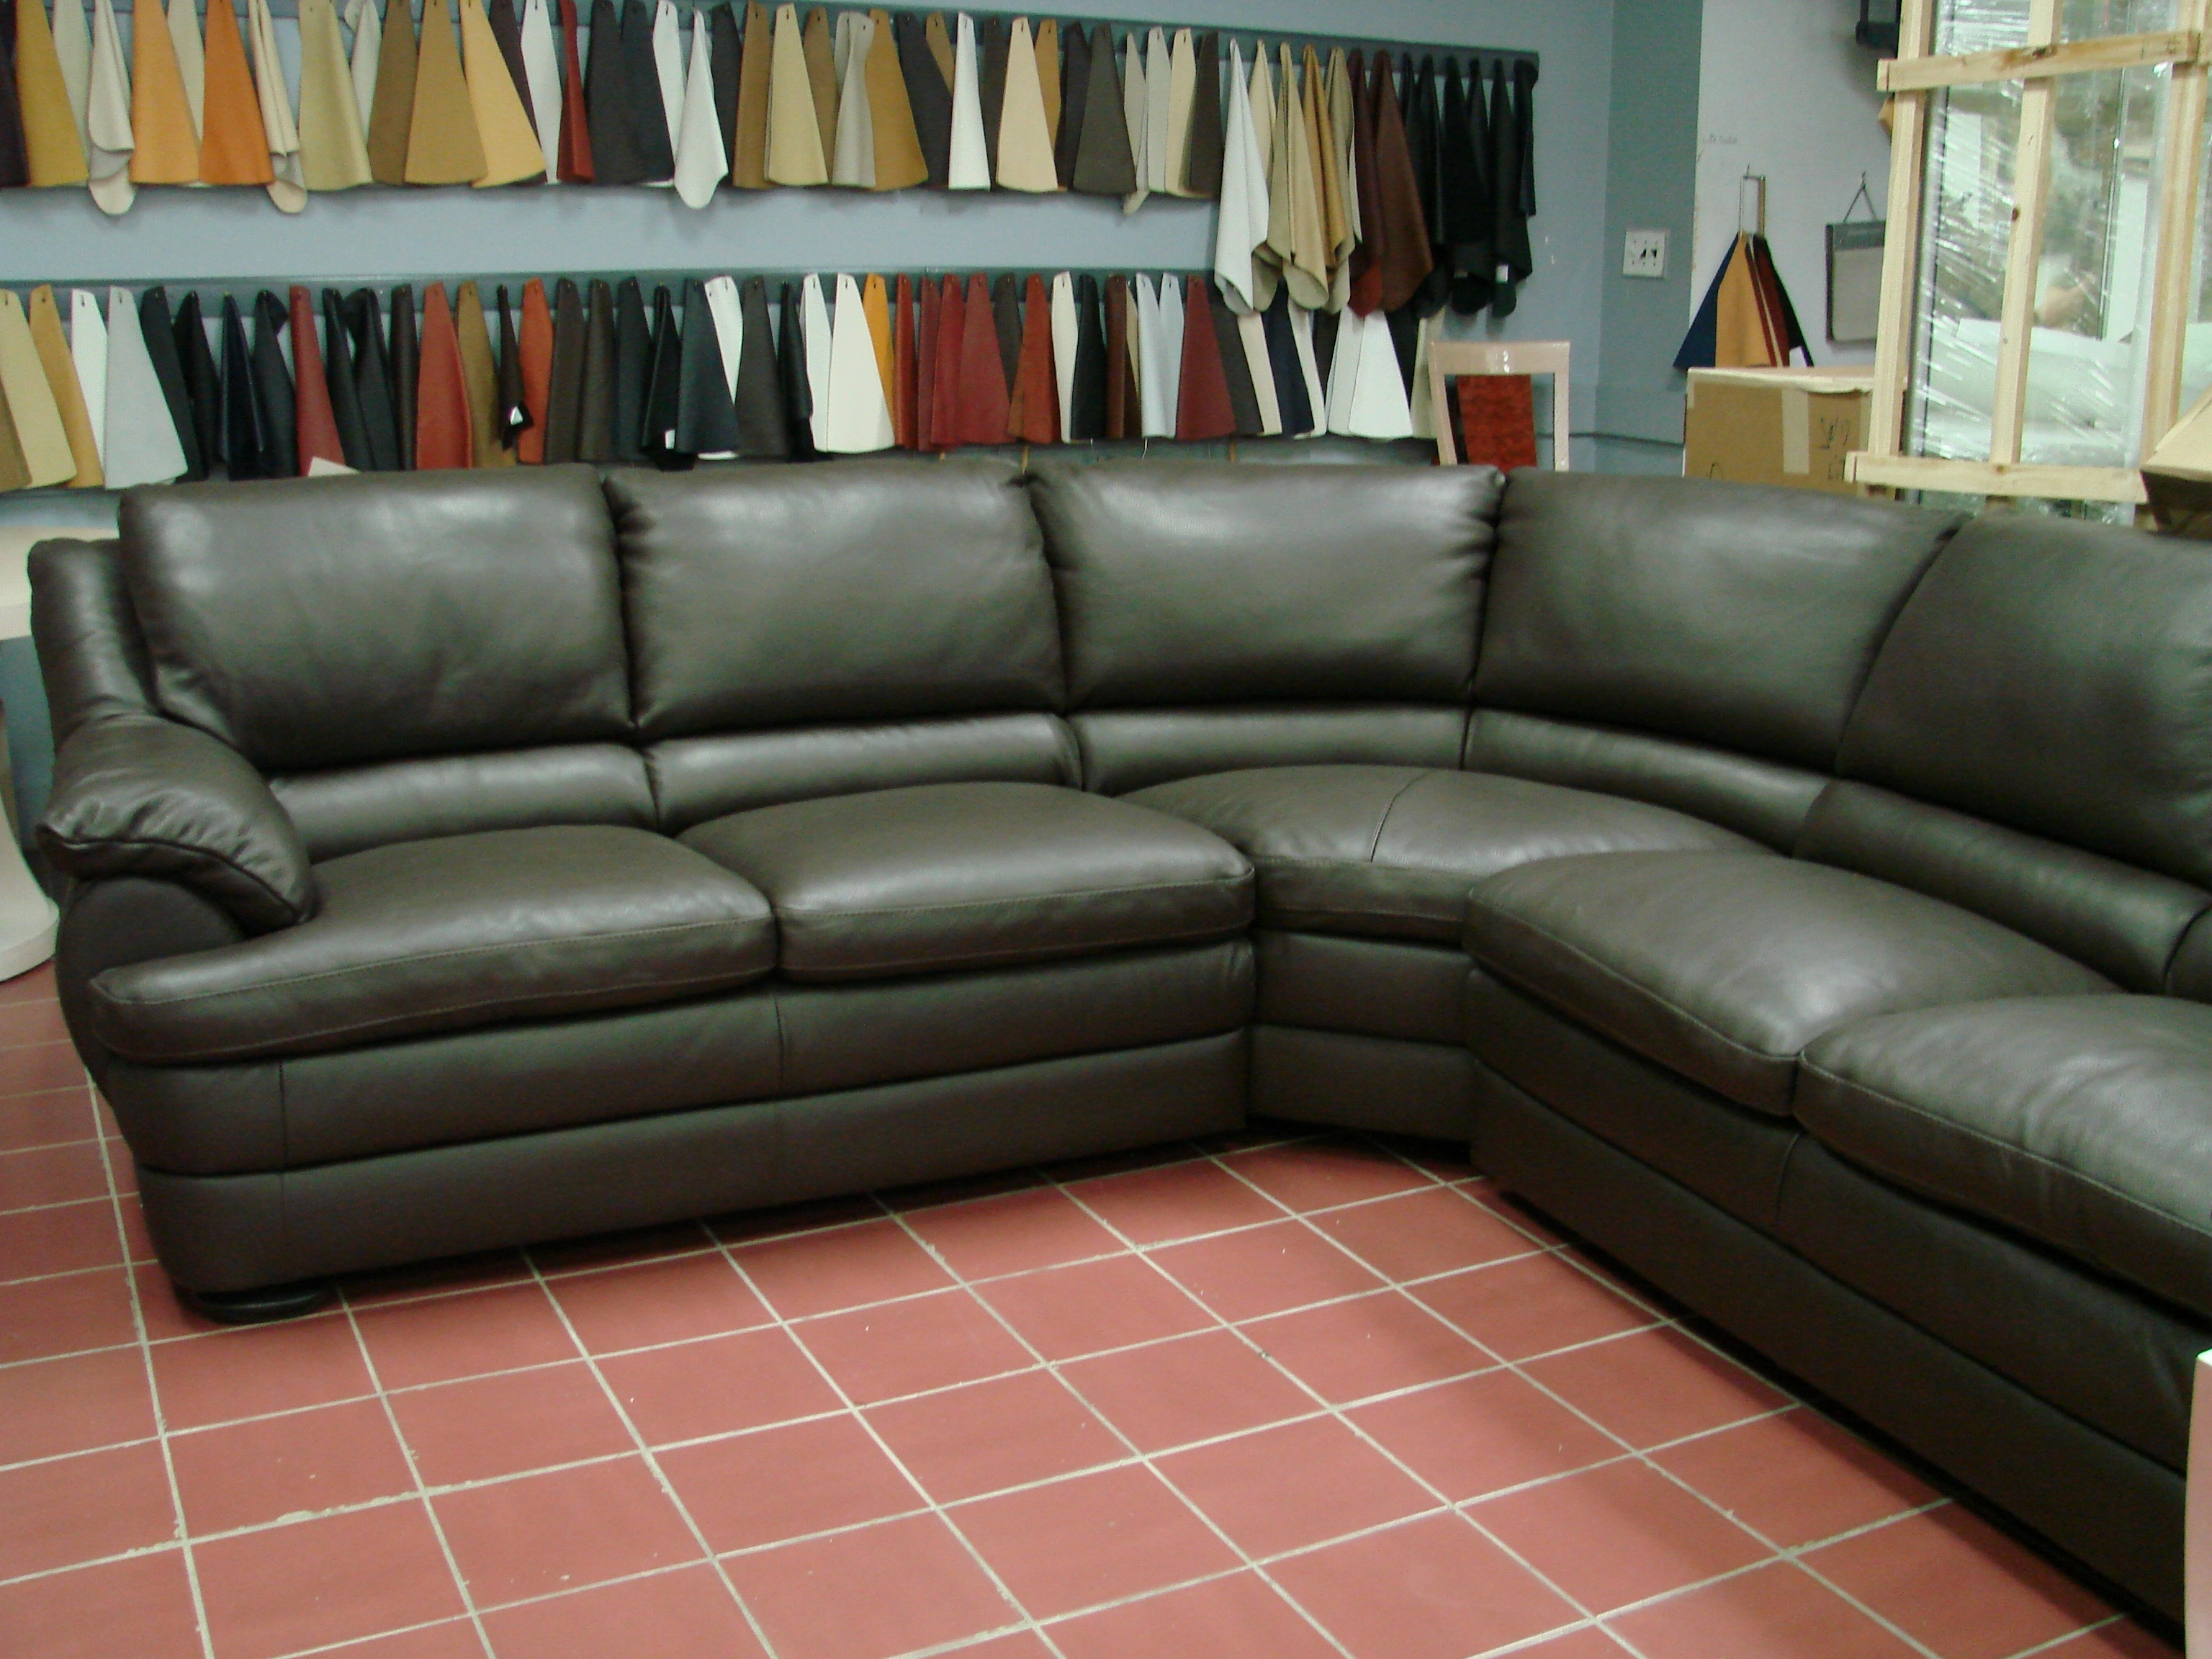 Leather Sectional Sofa With Recliners Sofas Ottawa For Sale Couch In Ottawa Sale Sectional Sofas (View 9 of 10)